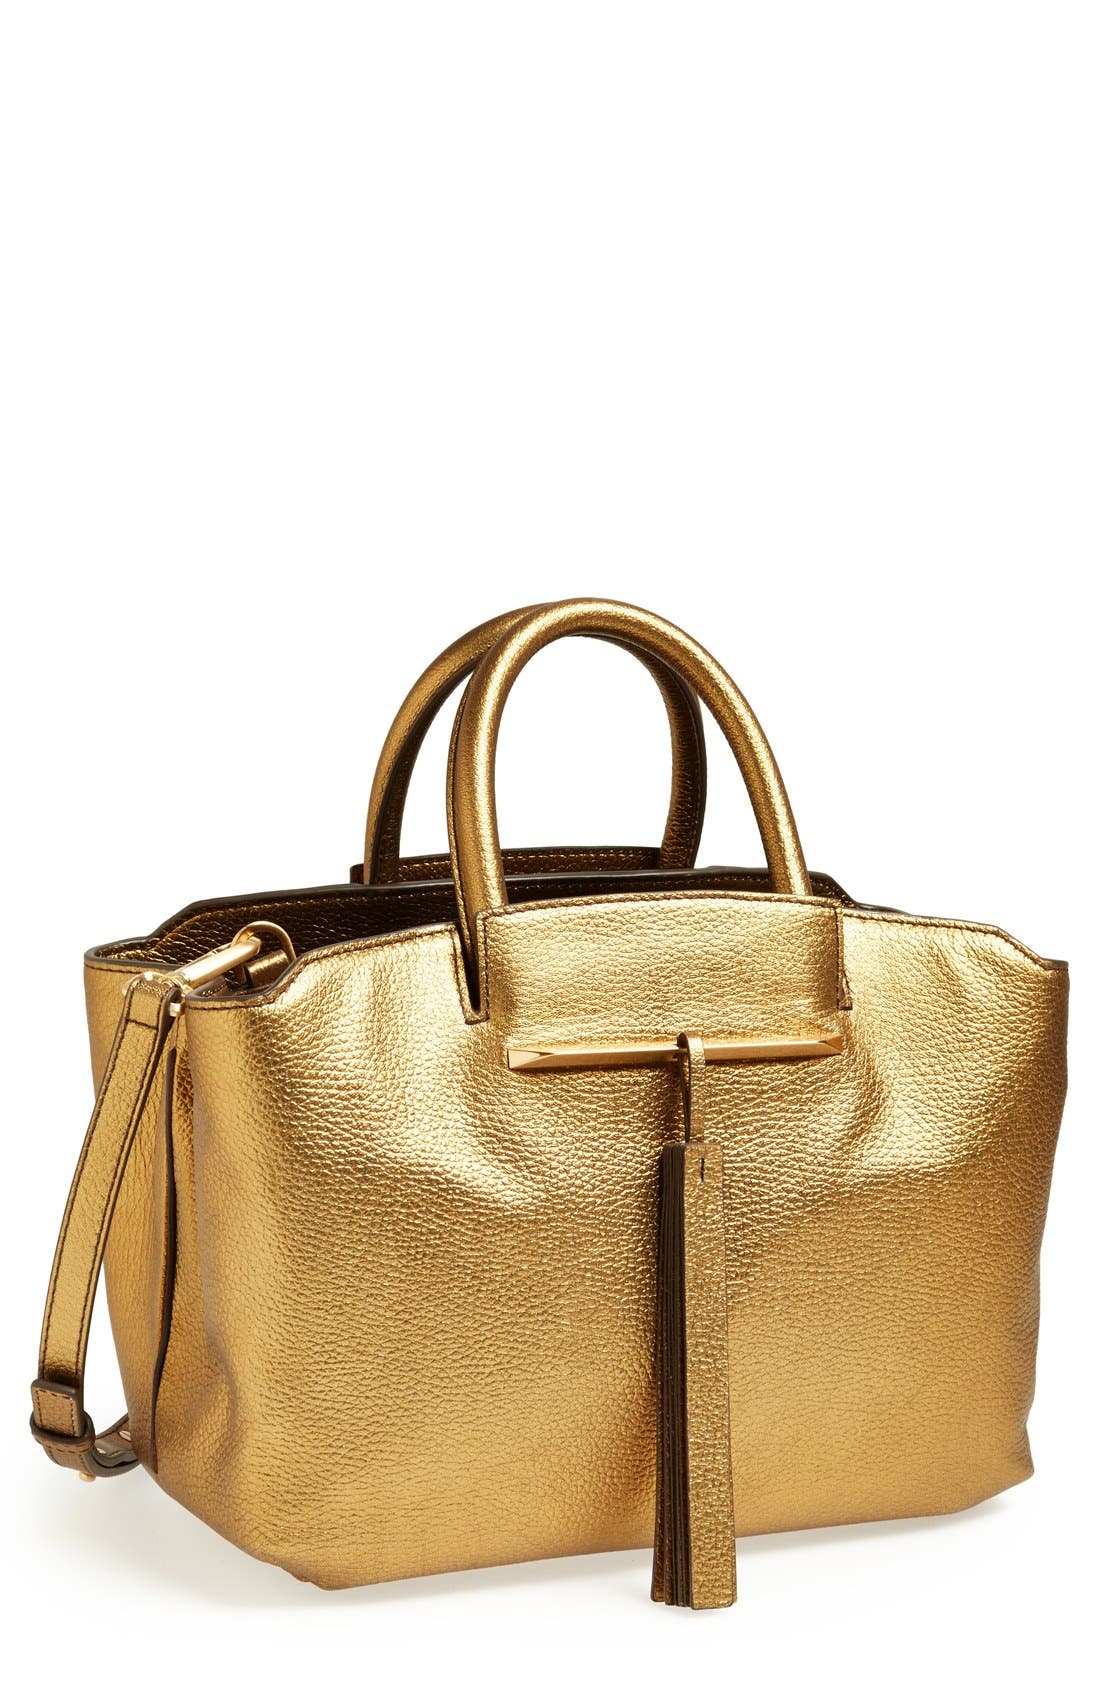 Alternate Image 1 Selected - B Brian Atwood 'Gloria' Leather Tote